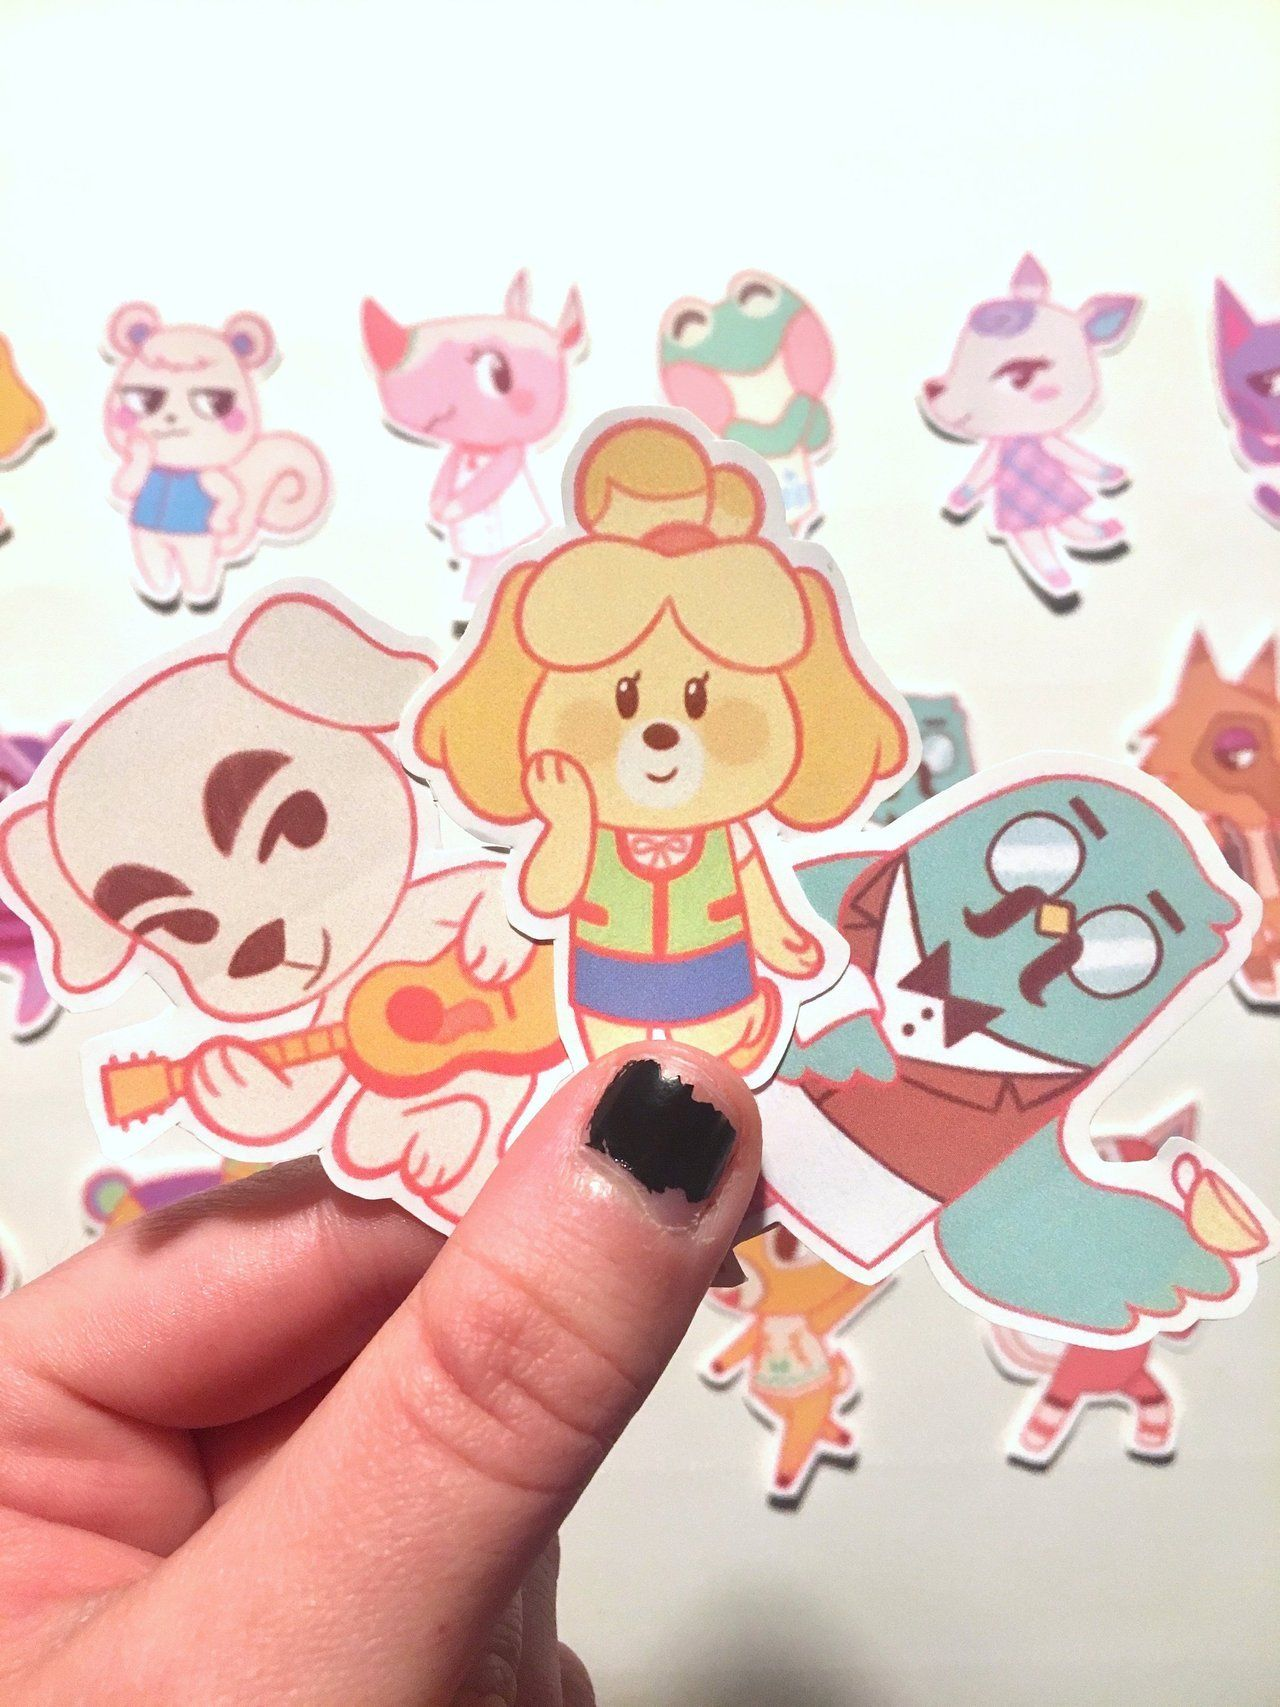 Animal Crossing New Leaf Stickers made by Addison Johnston -